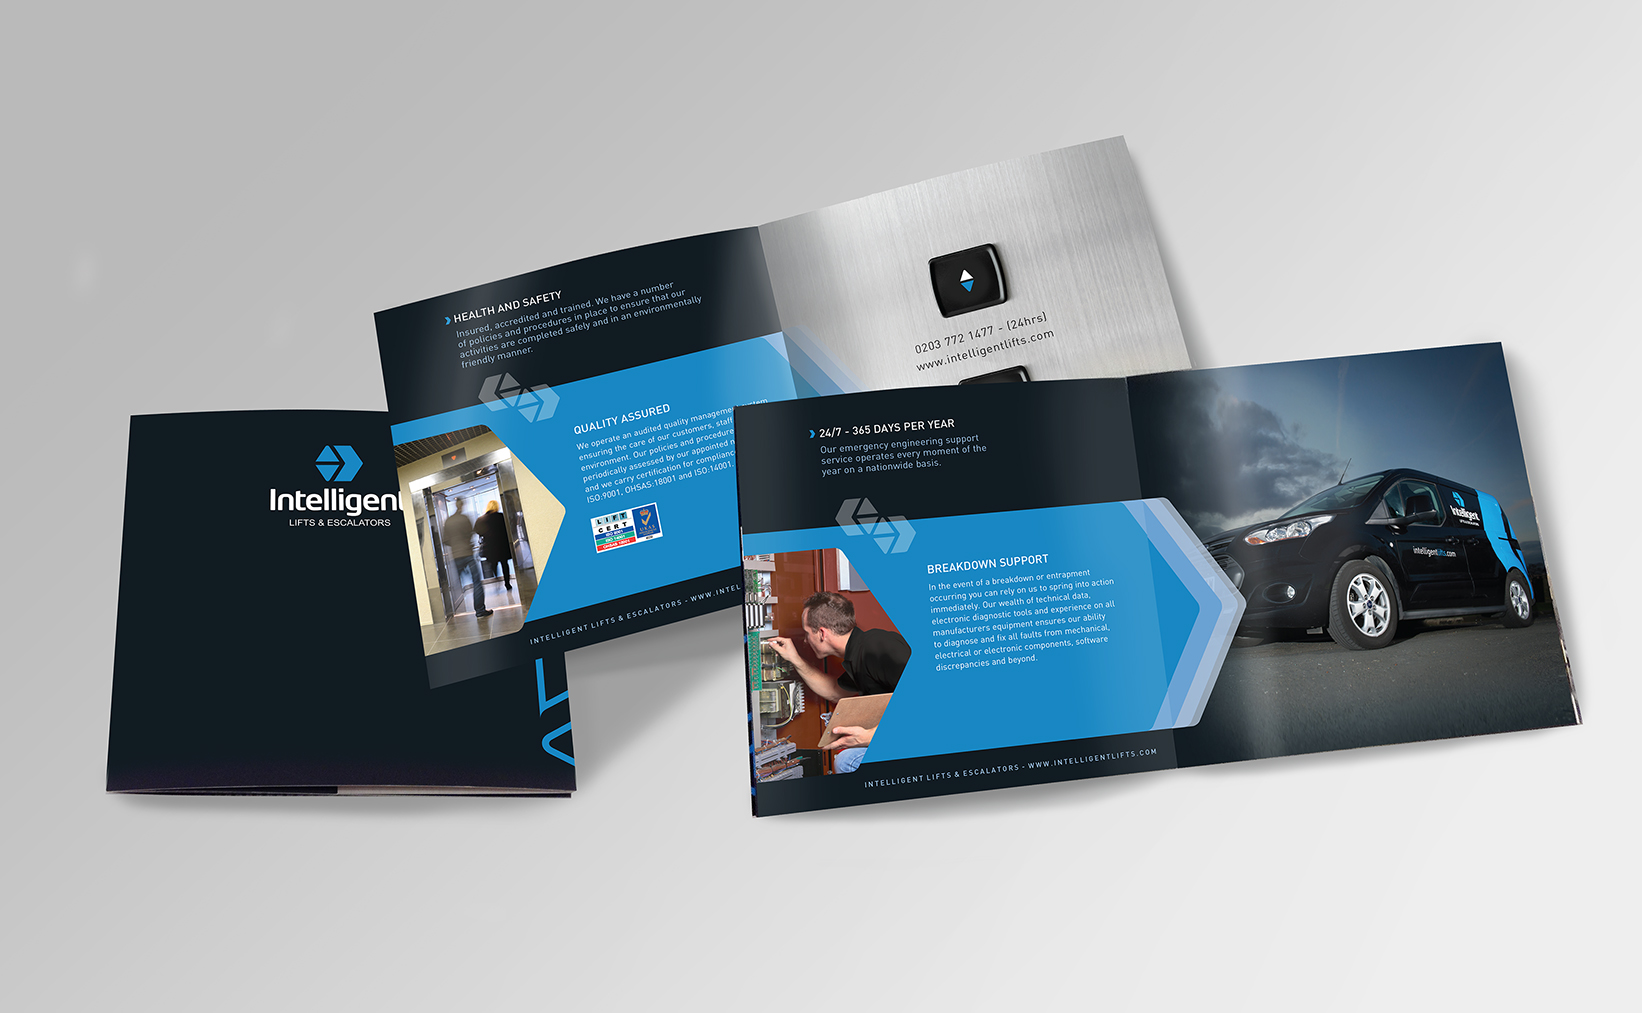 Inteligents lifts – Brochure spreads LR dpi